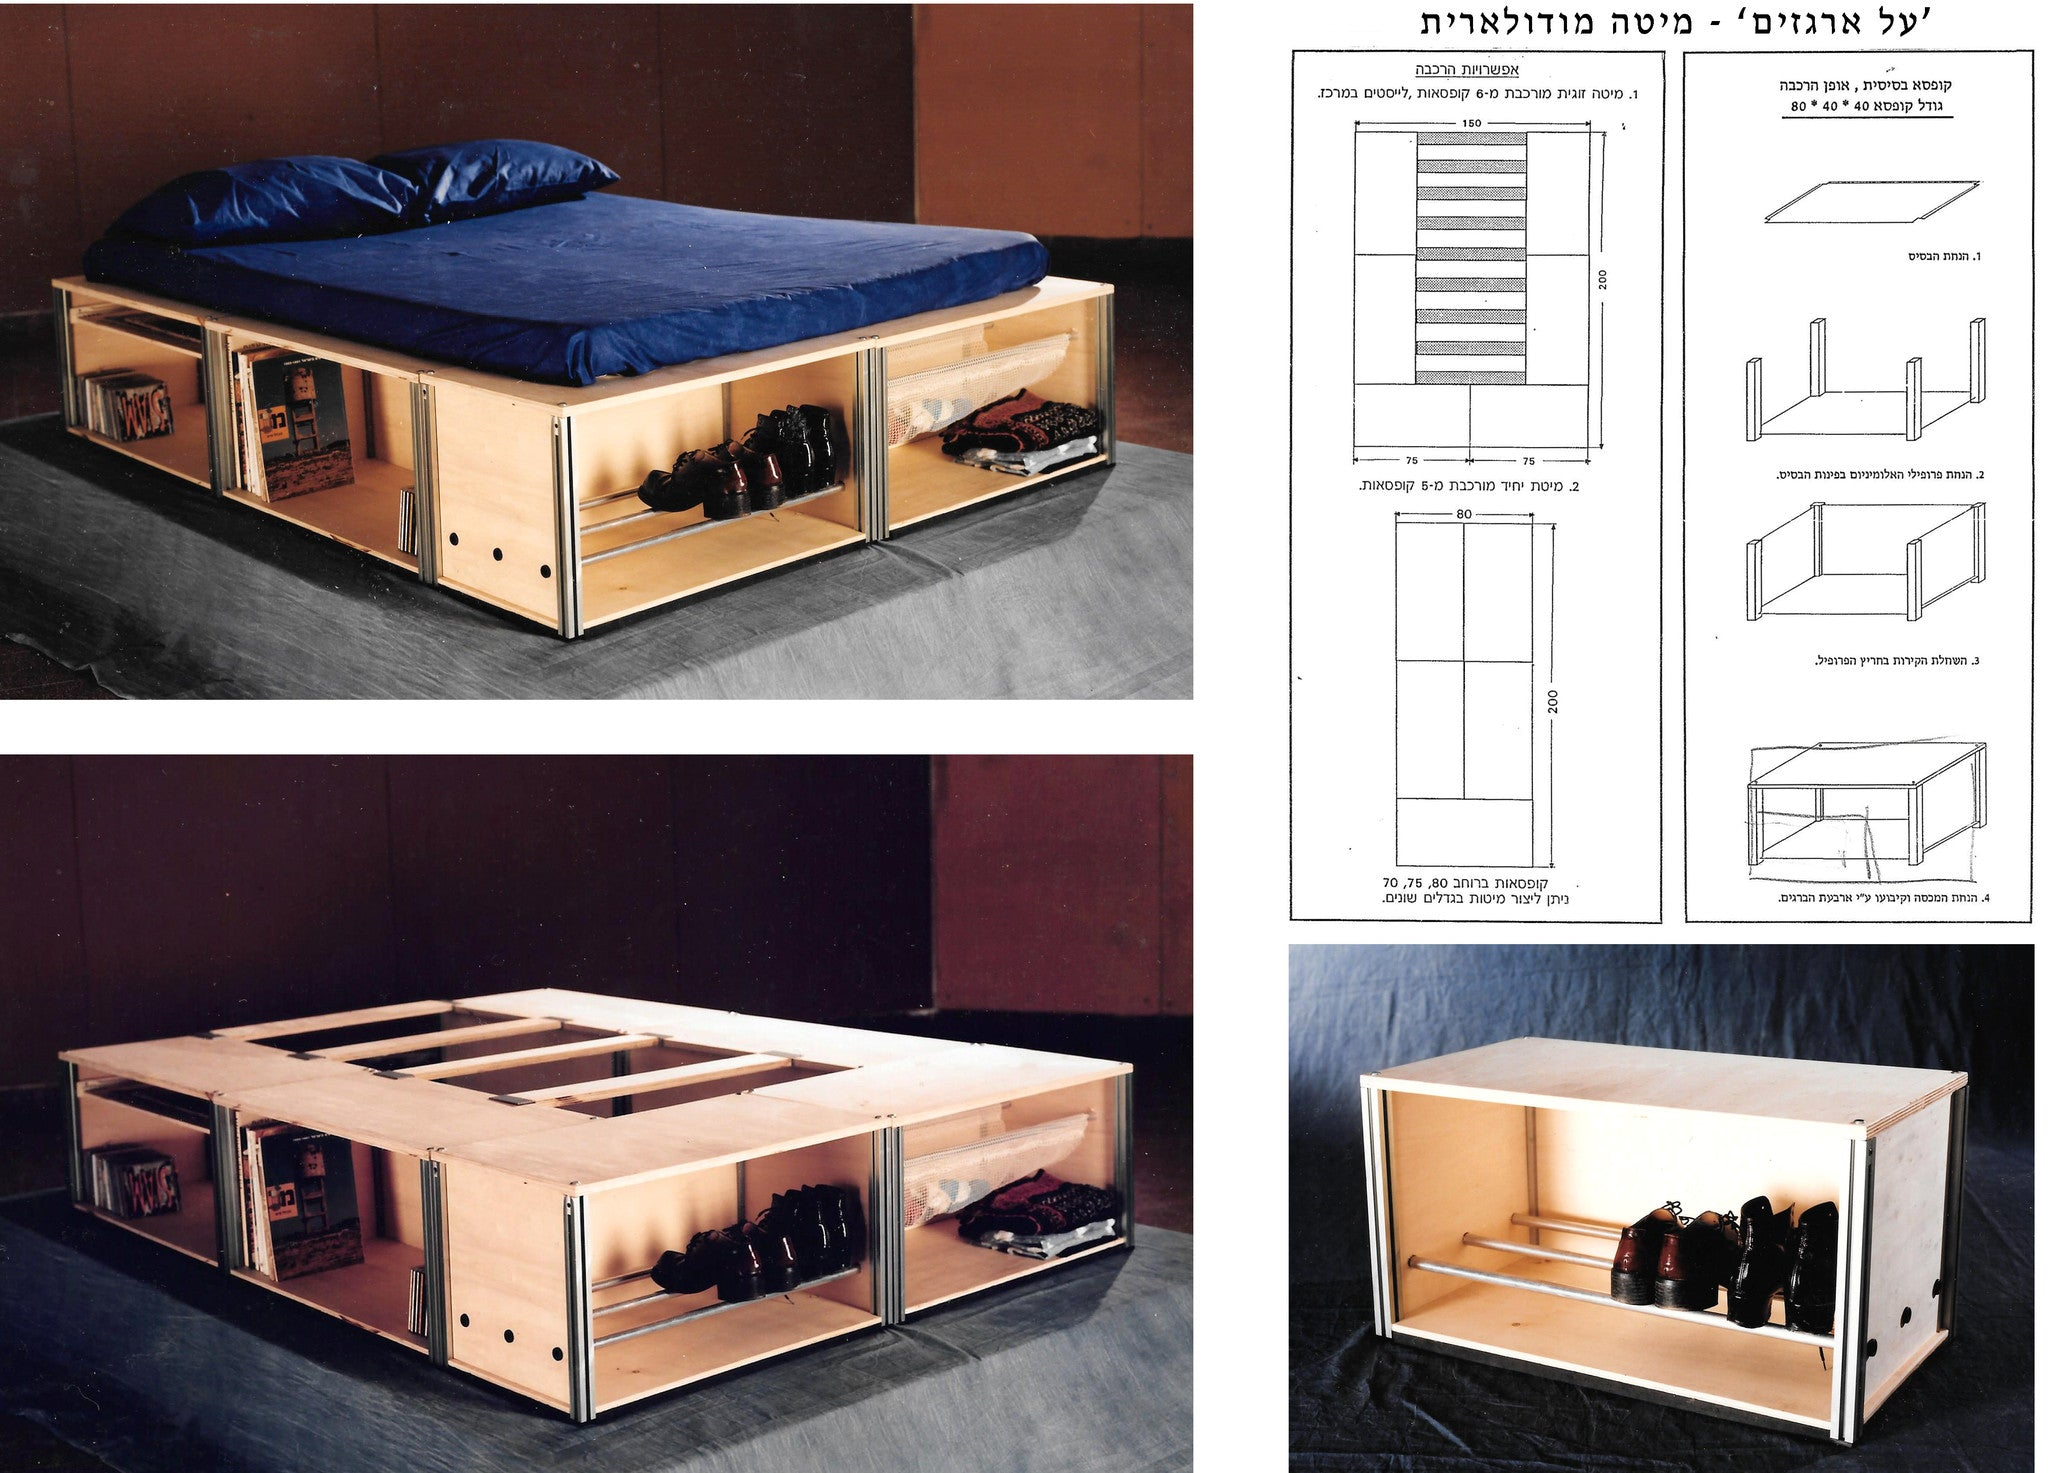 Modular bed design by Hadas Kruk